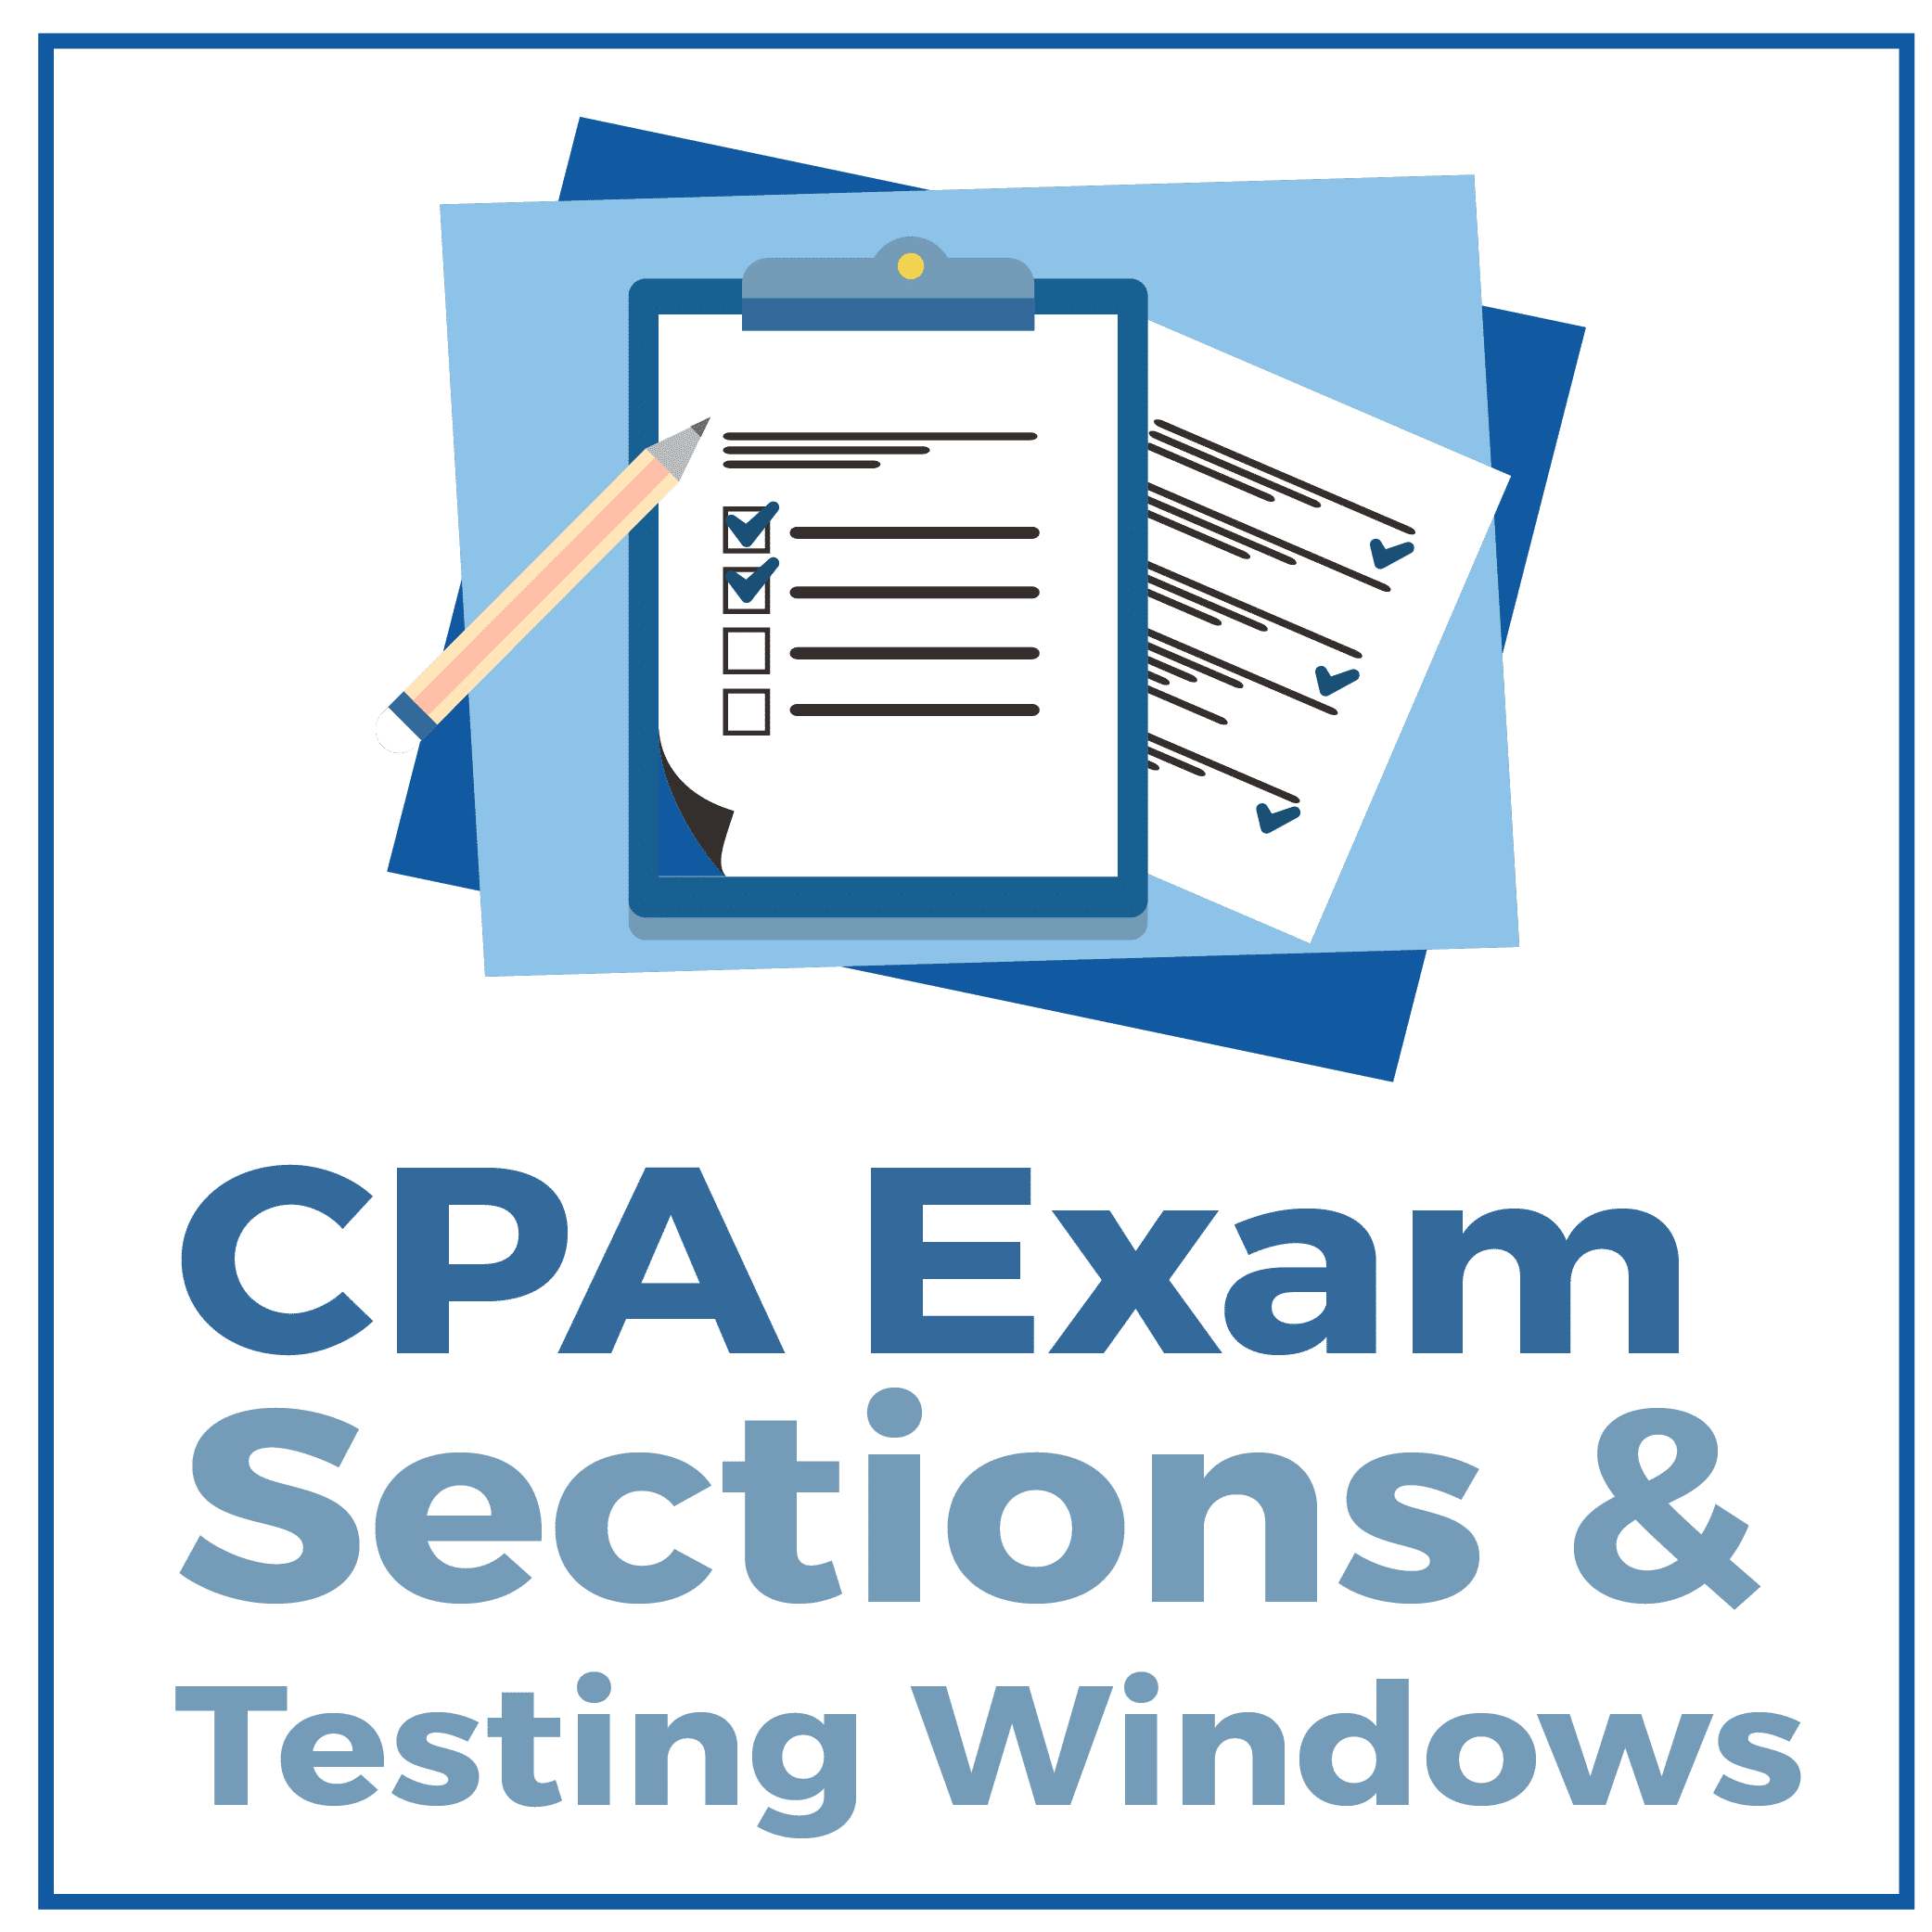 CPA Exam Sections & Testing Windows